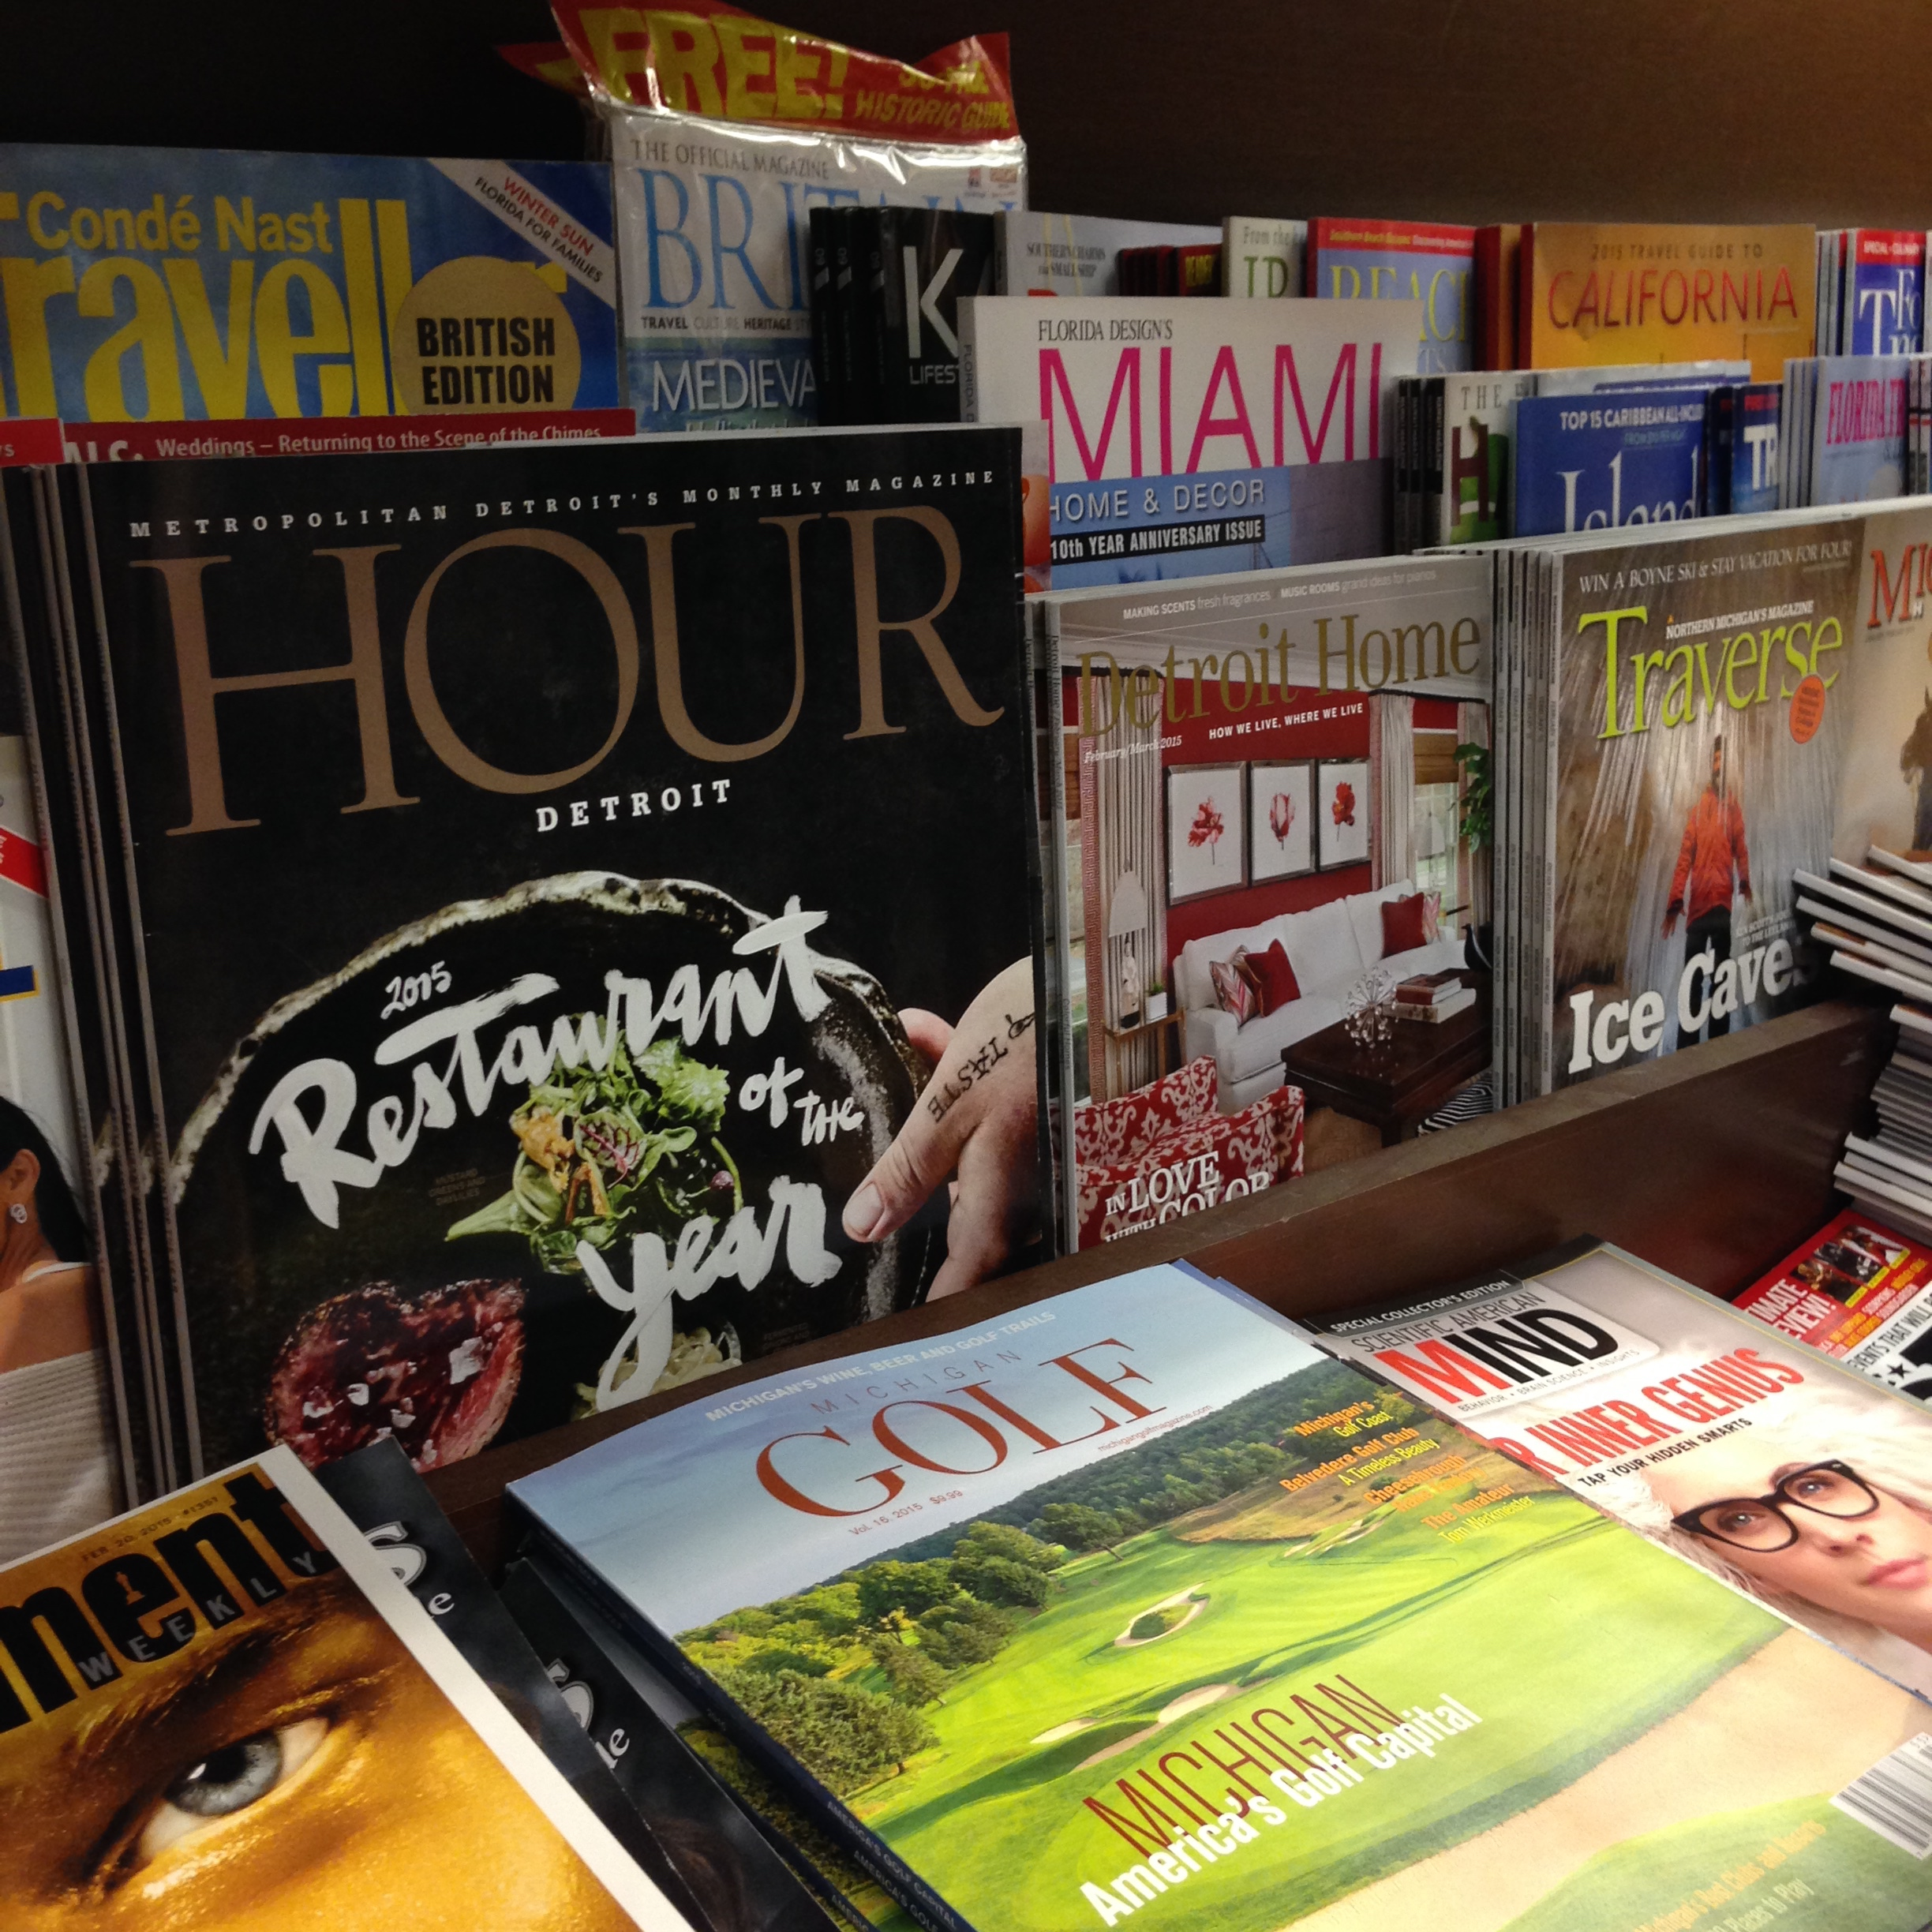 Hour-Detroit-March-2015-Newsstand.jpg